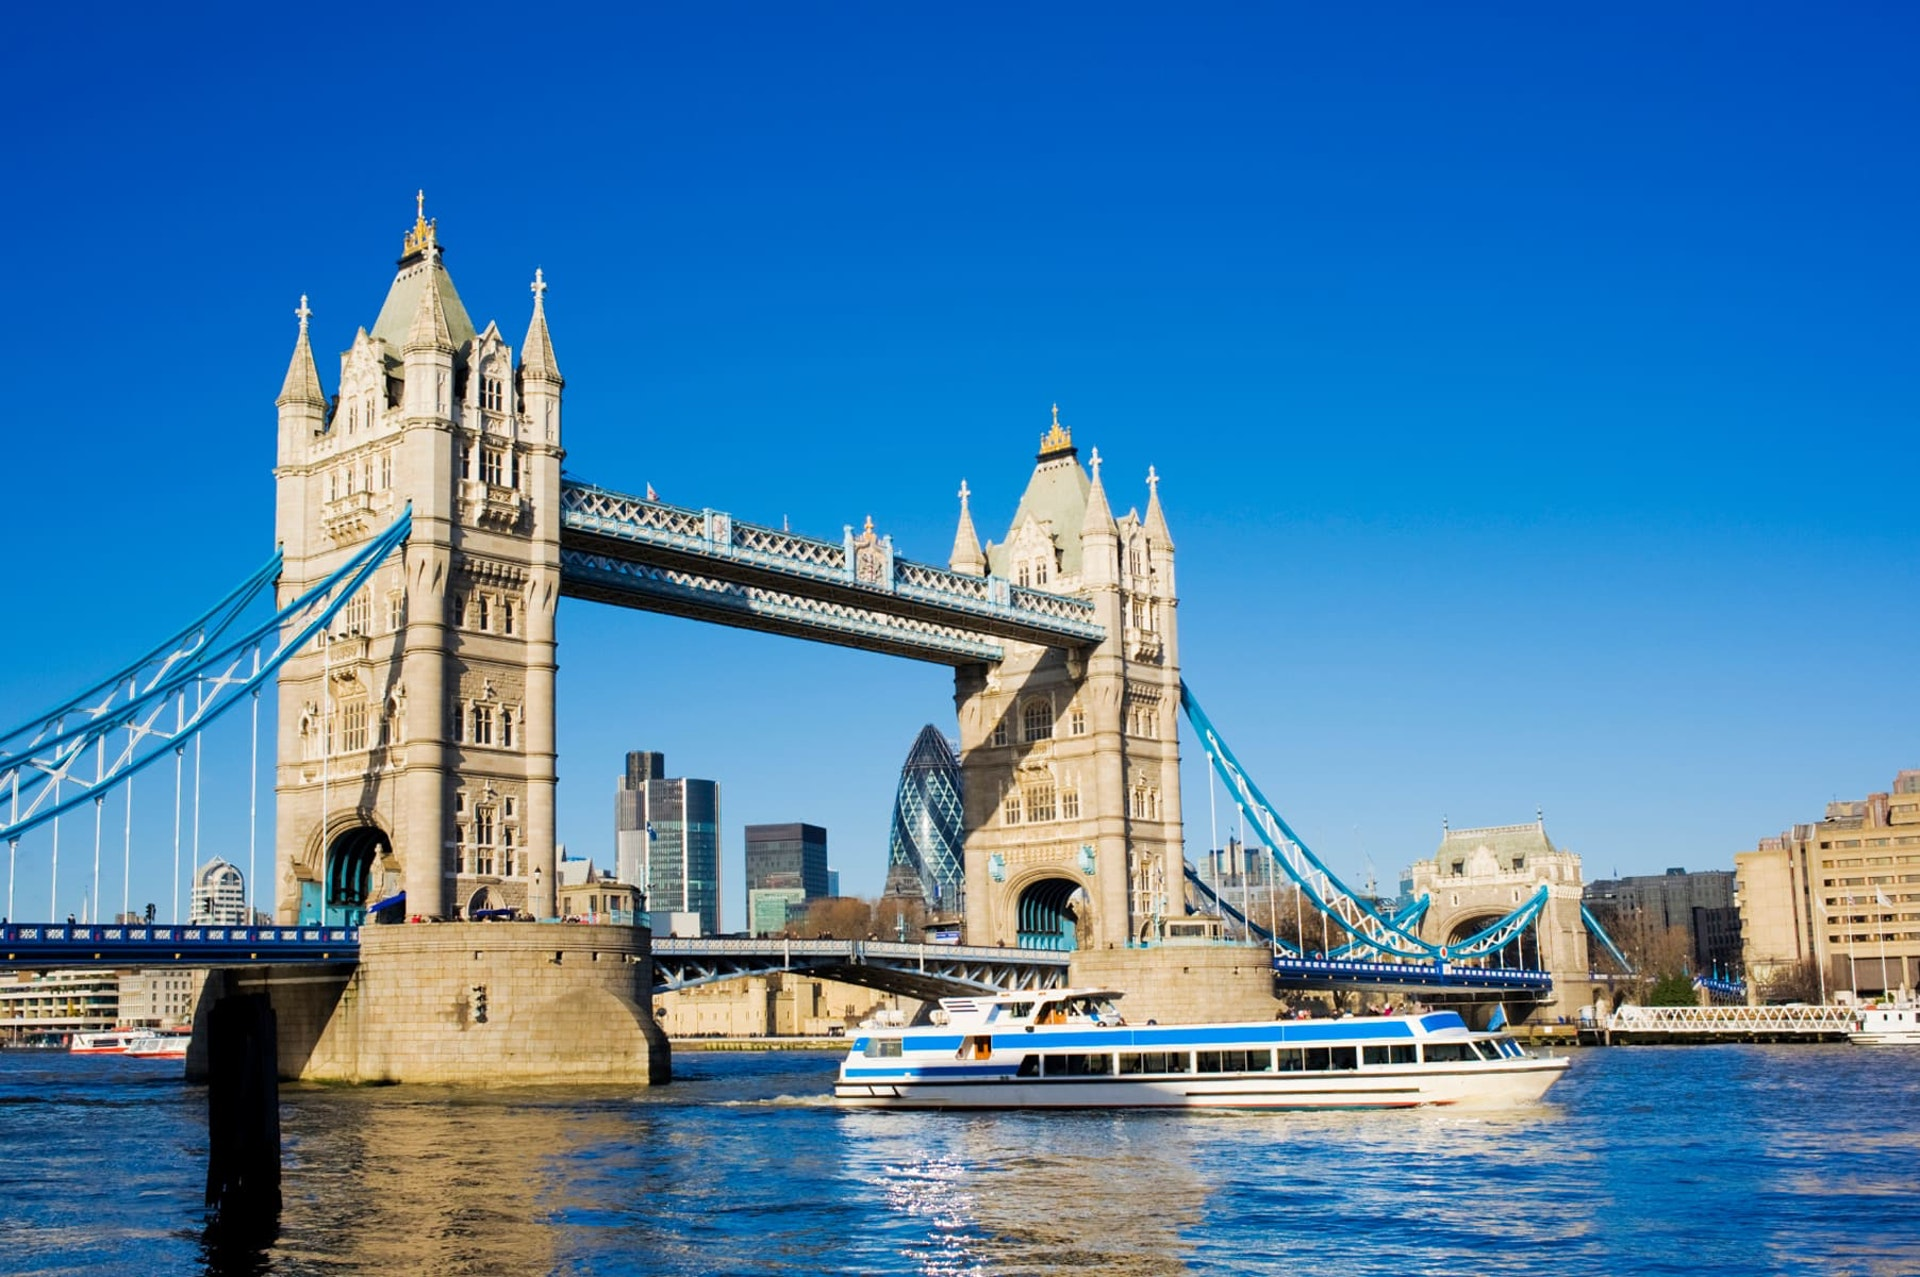 Tower Bridge with boat on River Thames